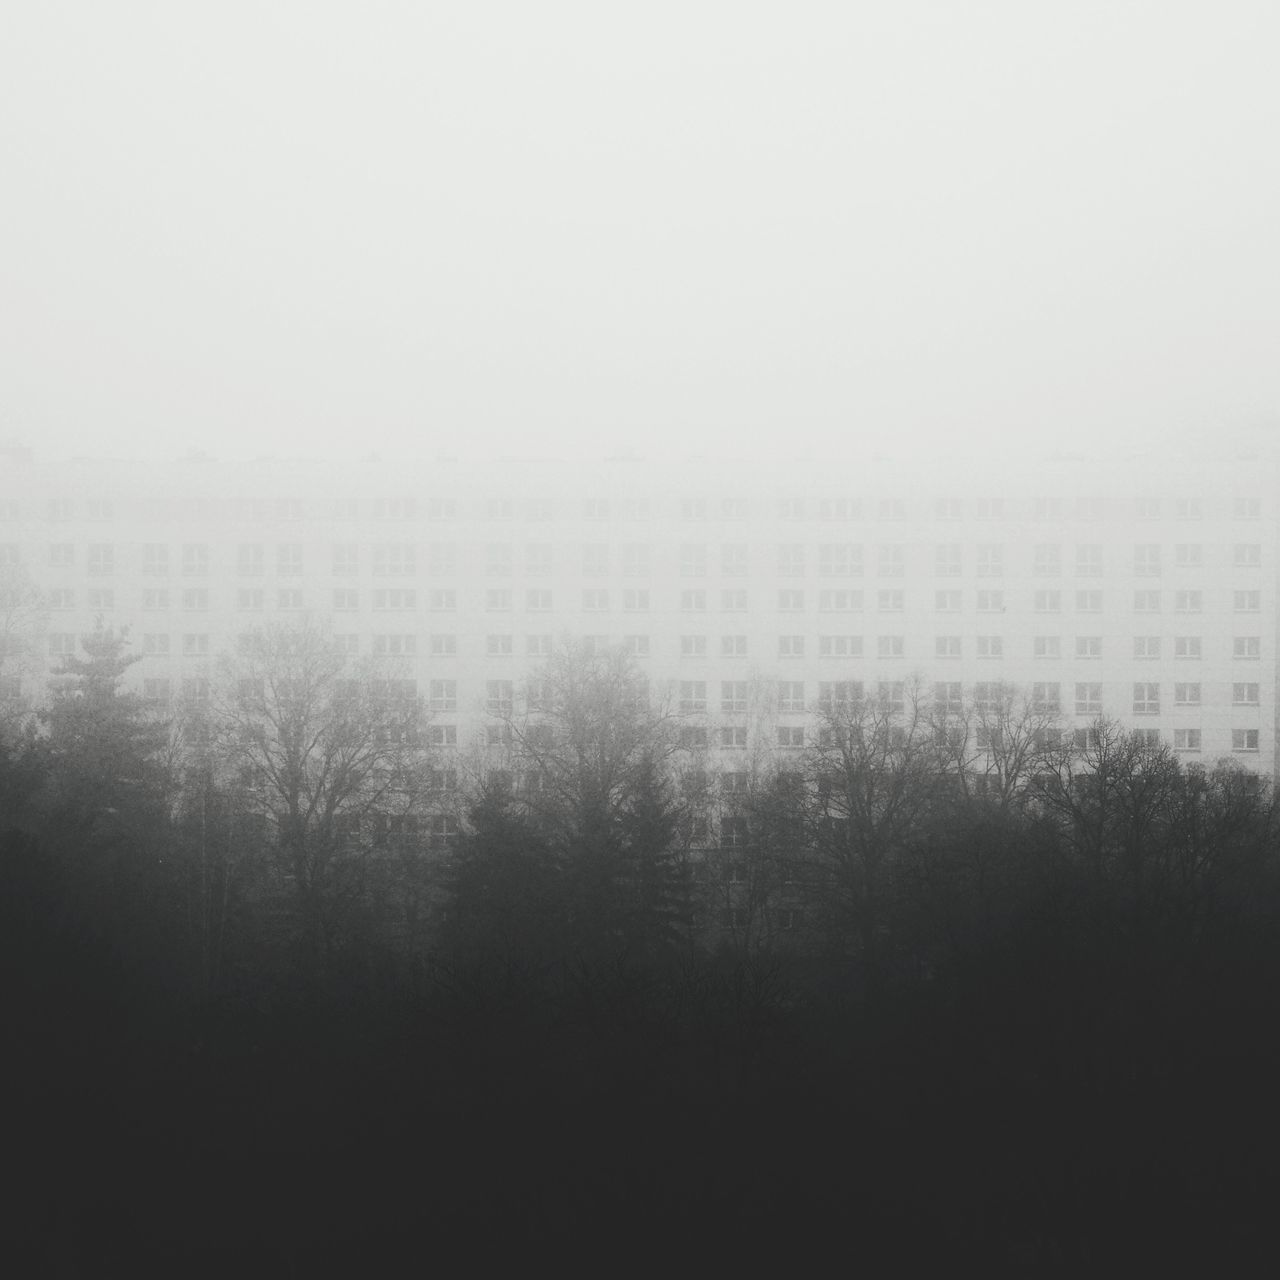 Fog Mist Tree Foggy Morning Nature Architecture Negative Space